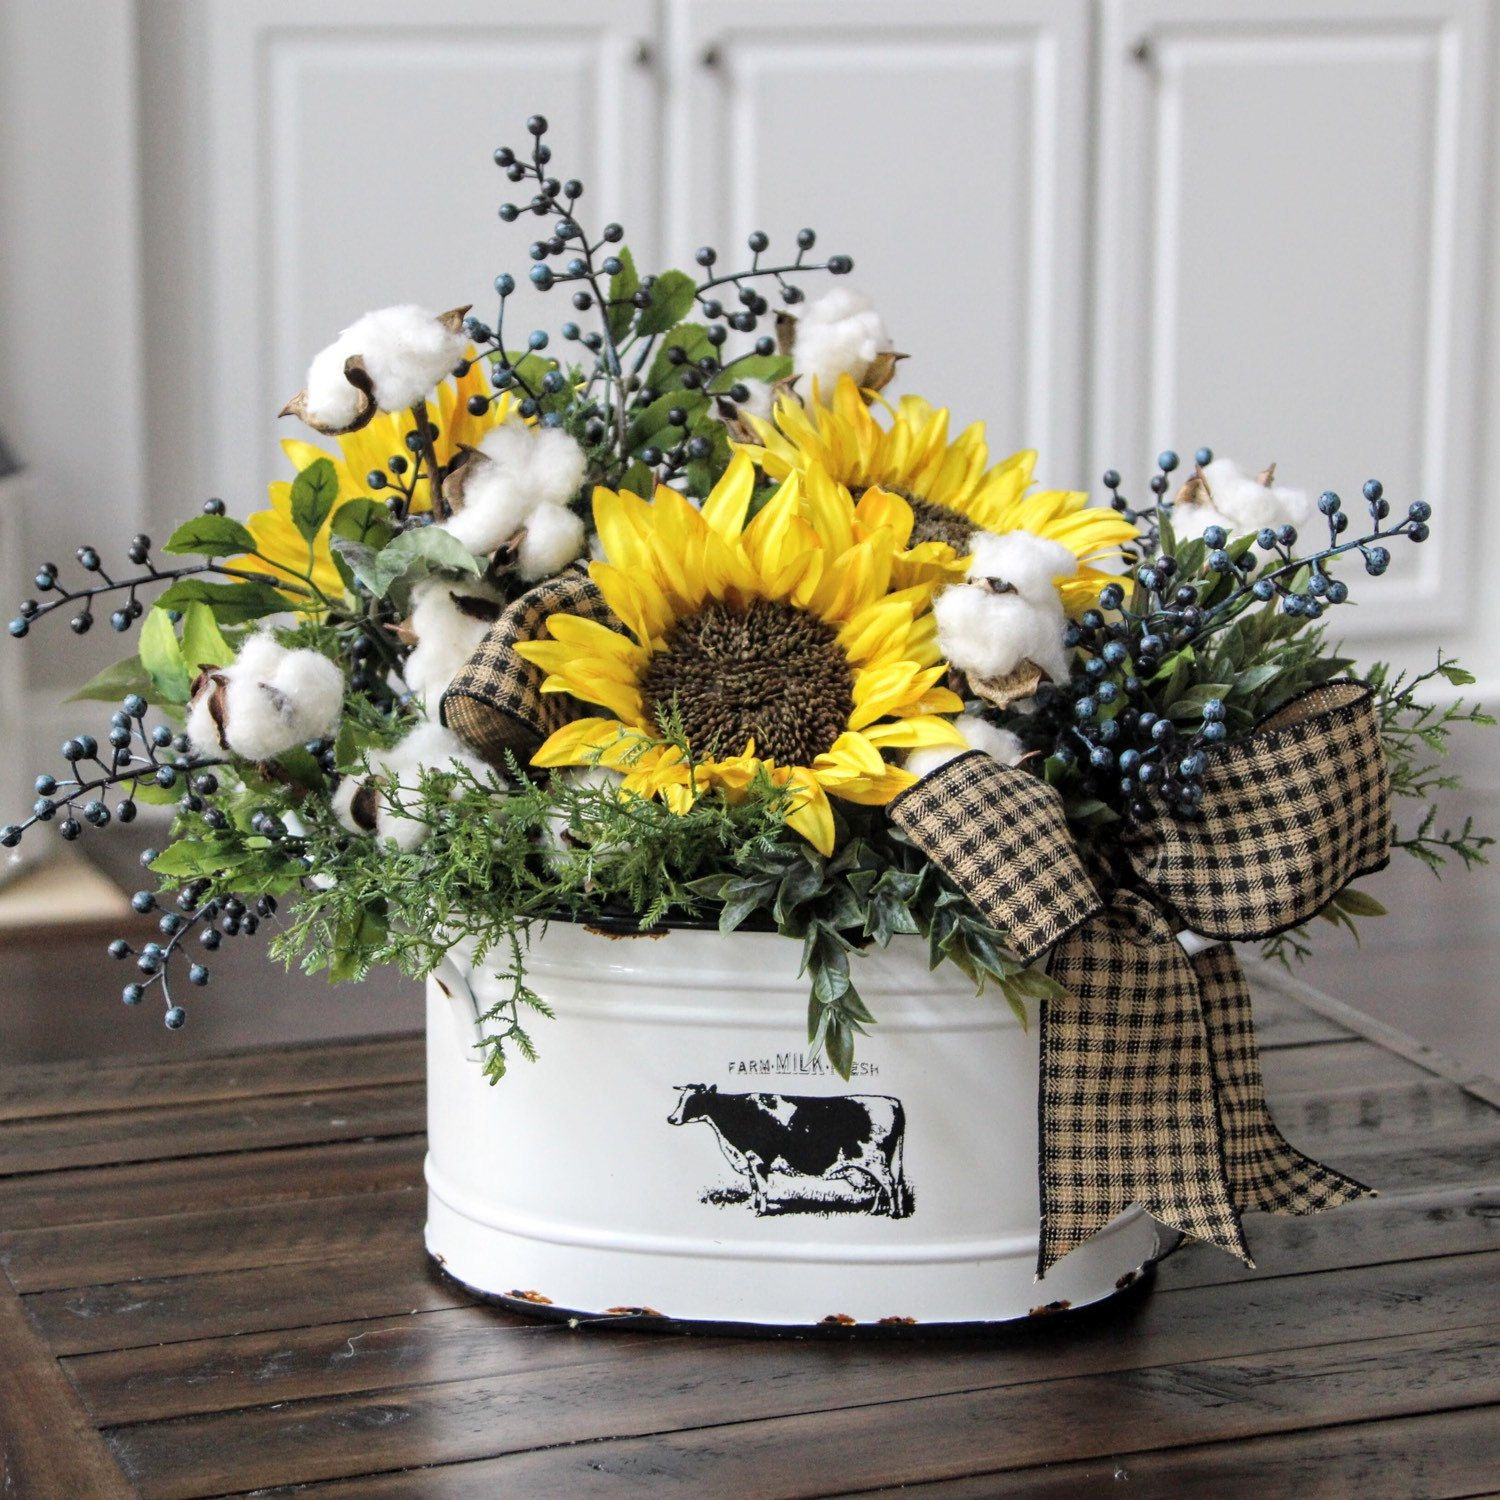 Sweet Sunflowers Add A Little Farmhouse Country To Your Home